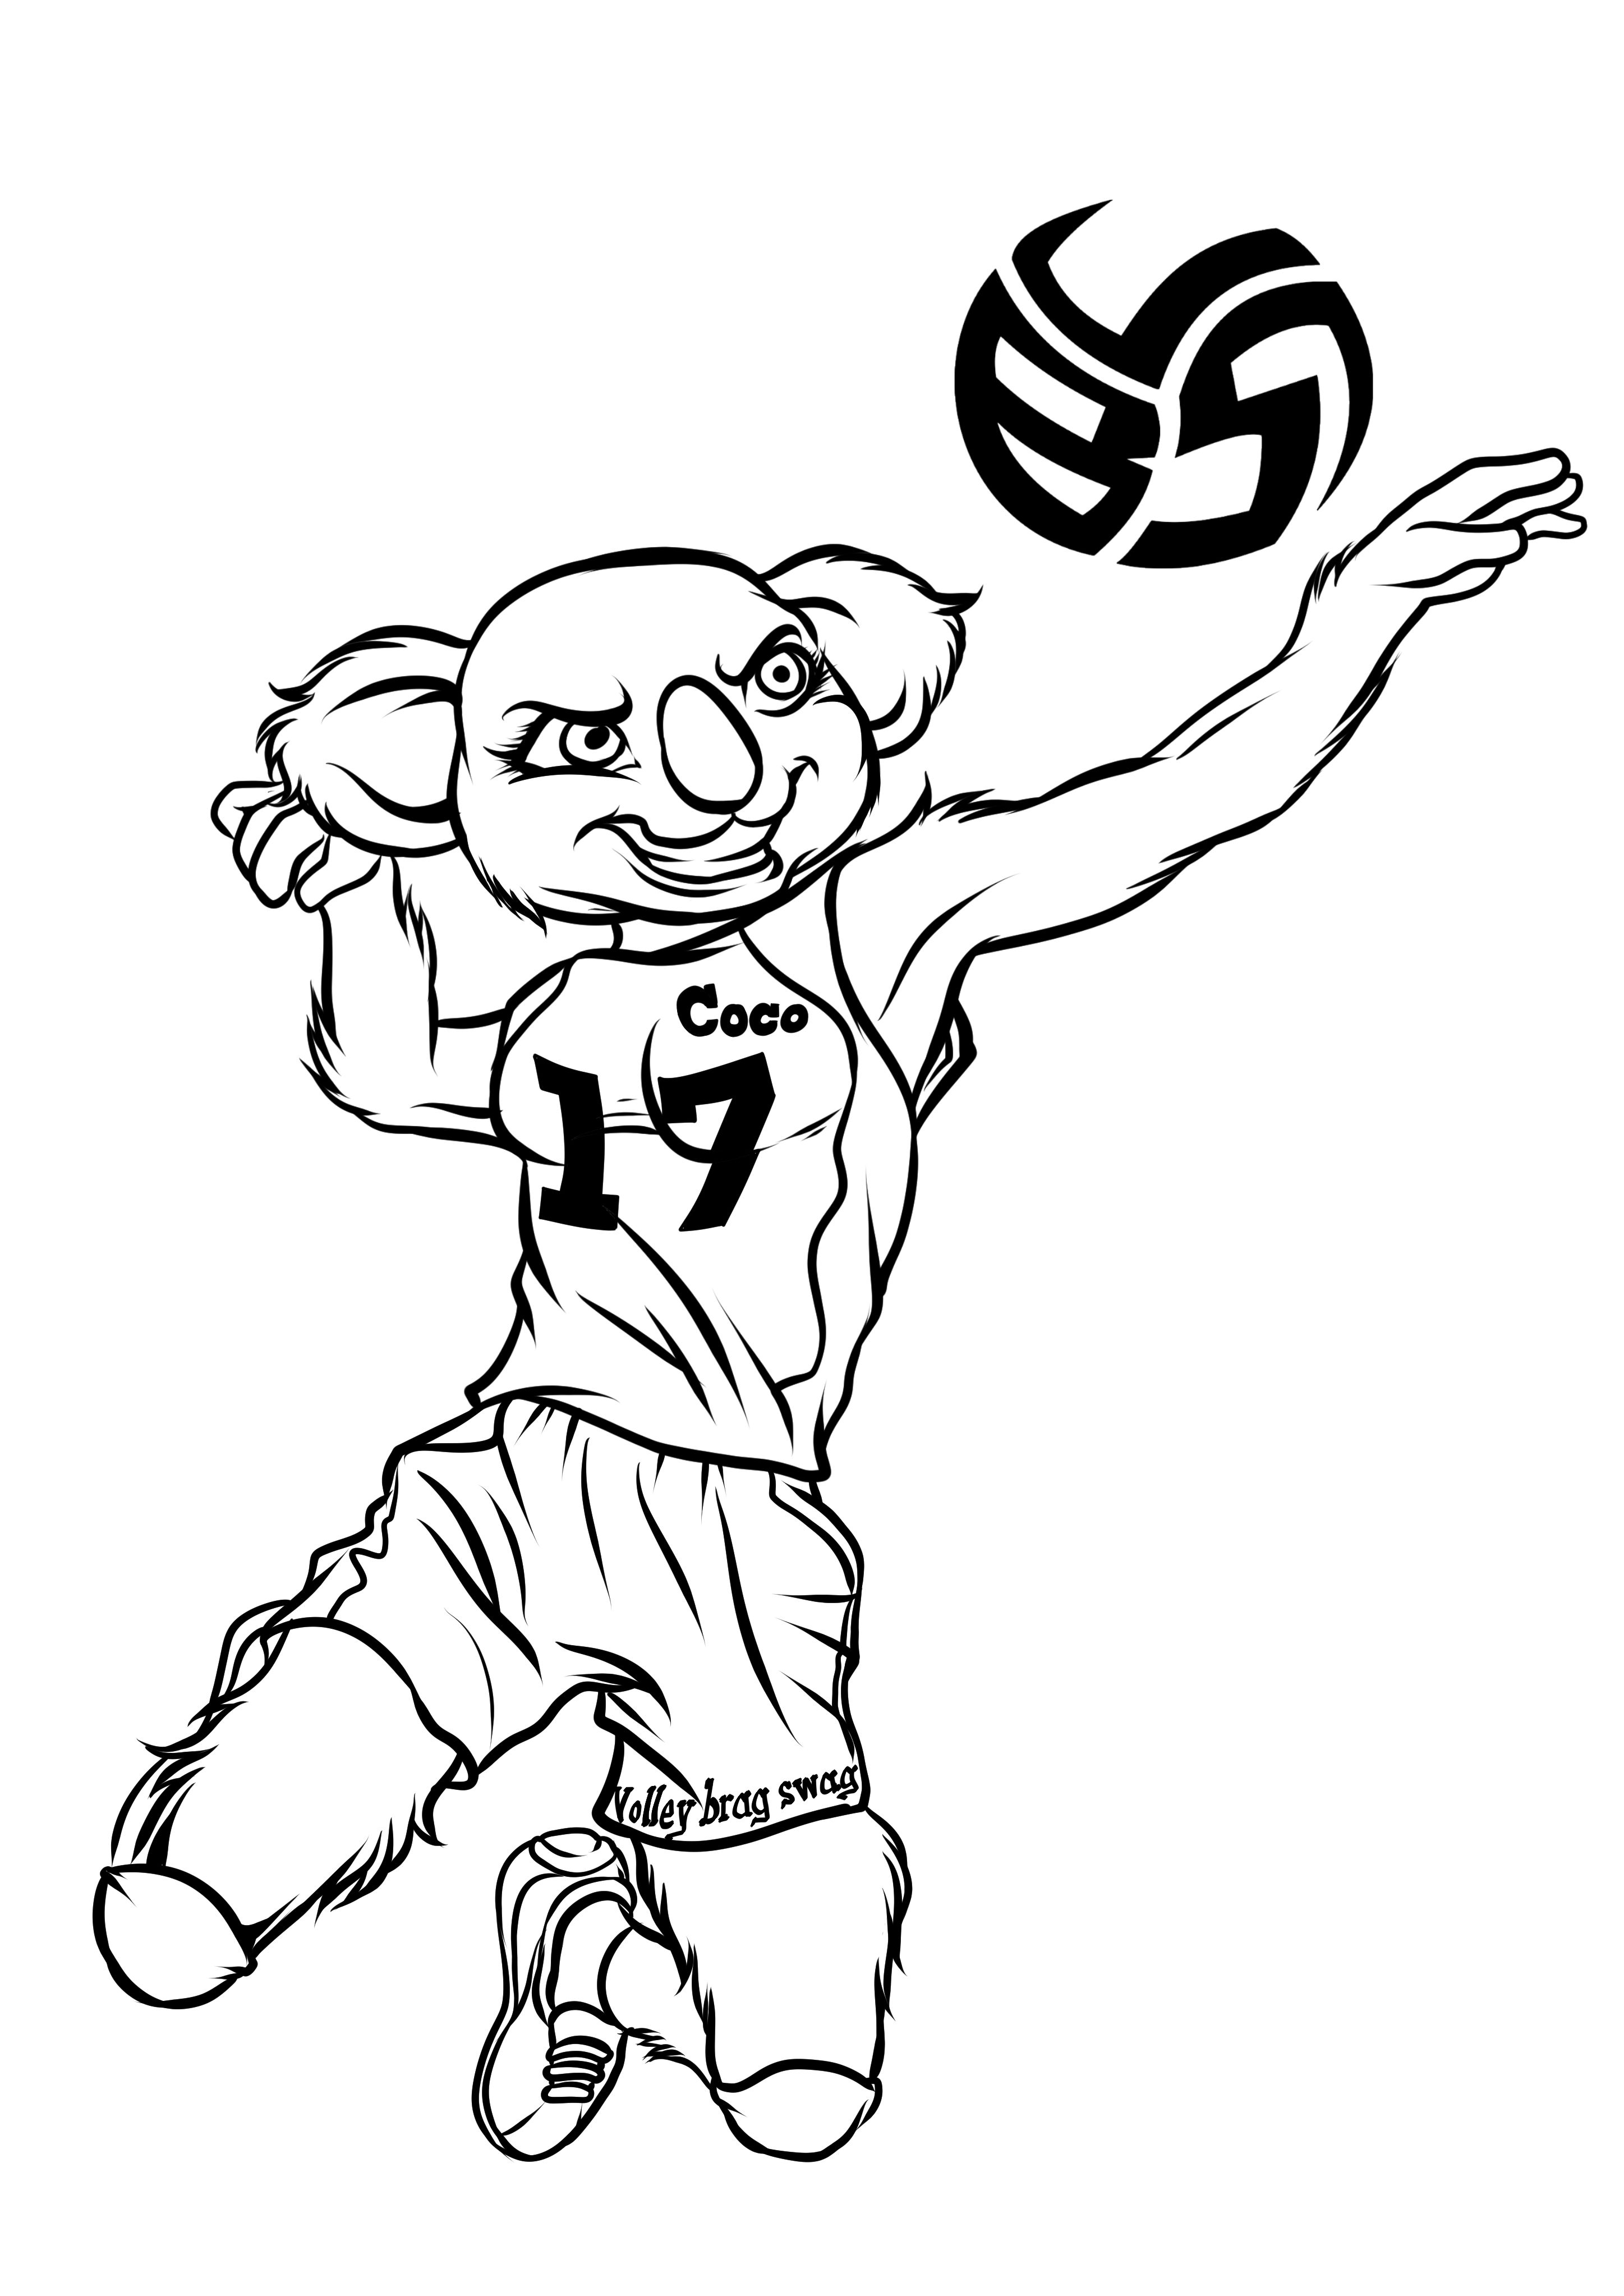 Koala Coloring Pages With Volleybragswag Opposite Coco the